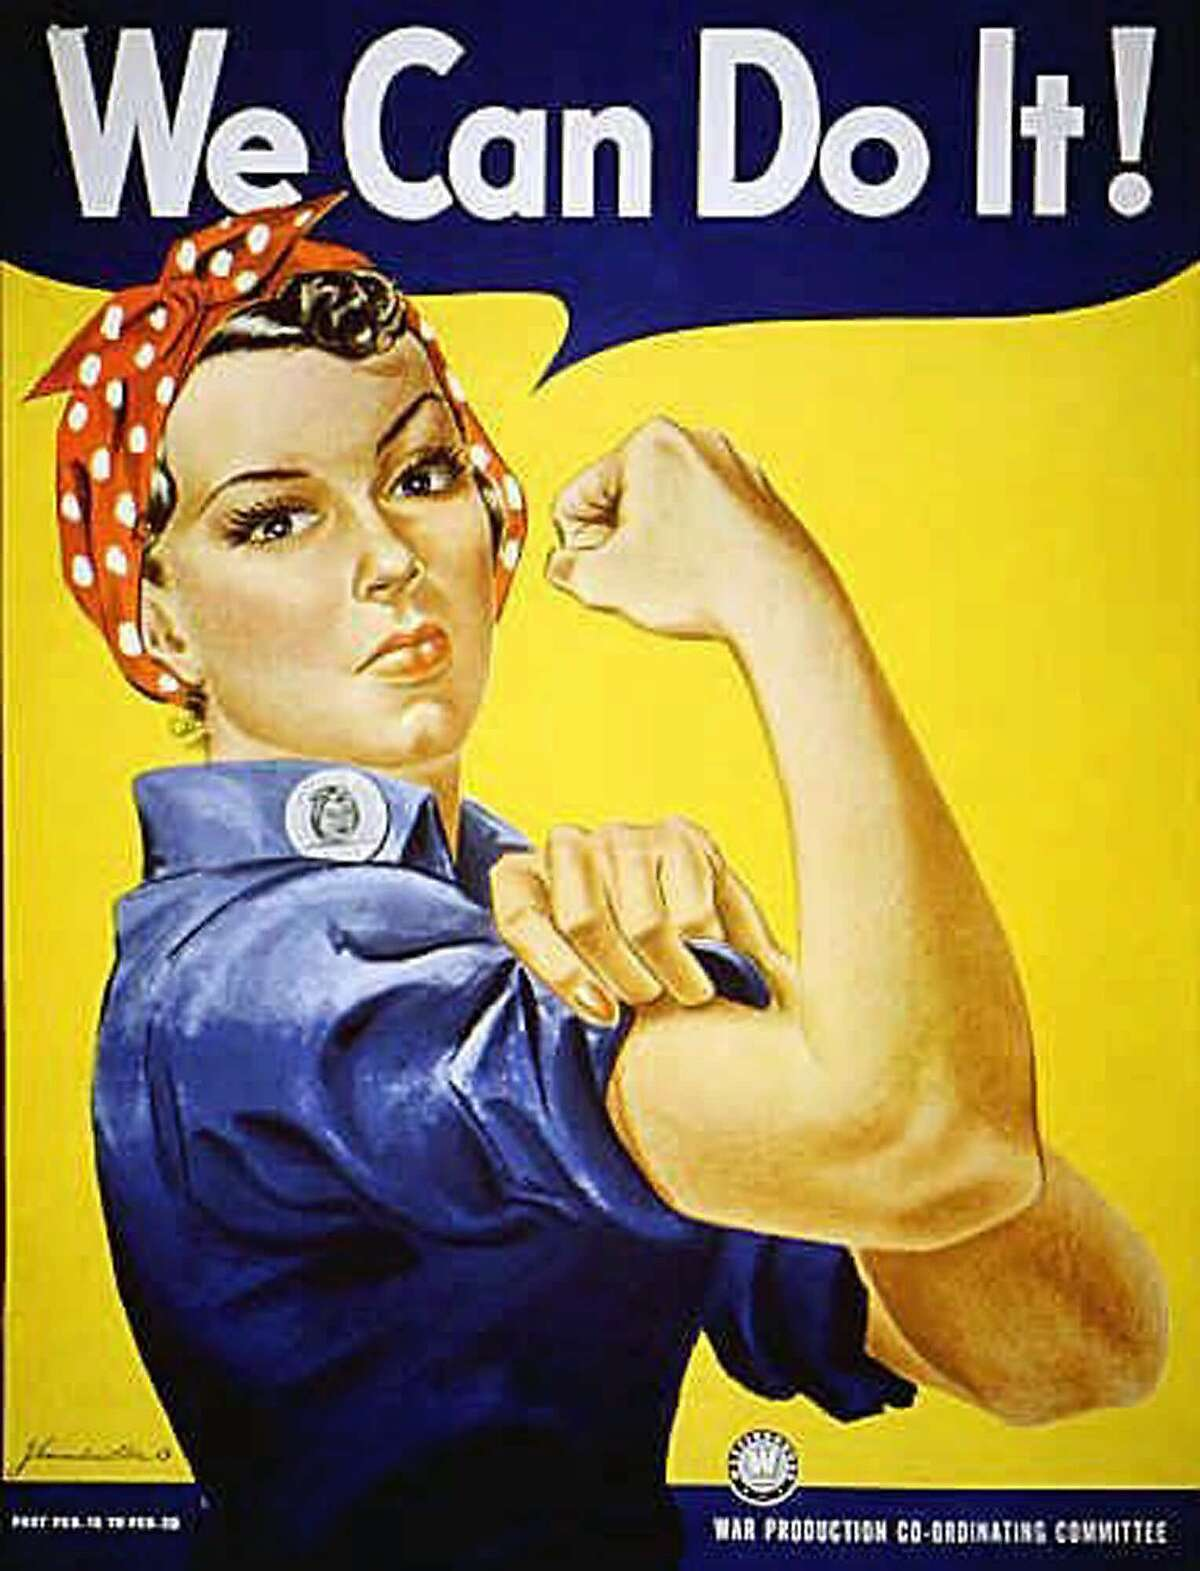 """""""Rosie the Riveter"""" dressed in overalls and bandanna was introduced as a symbol of patriotic womanhood in the 1940's. Rose Will Monroe played """"Rosie the Riveter,"""" the nation's poster girl for women joining the work force during World War II. Monroe was working as a riveter building B-29 and B-24 military airplanes at the Willow Run Aircraft Factory in Ypsilanti, Mich., when she was asked to star in a promotional film about the war effort. (AP Photo)"""